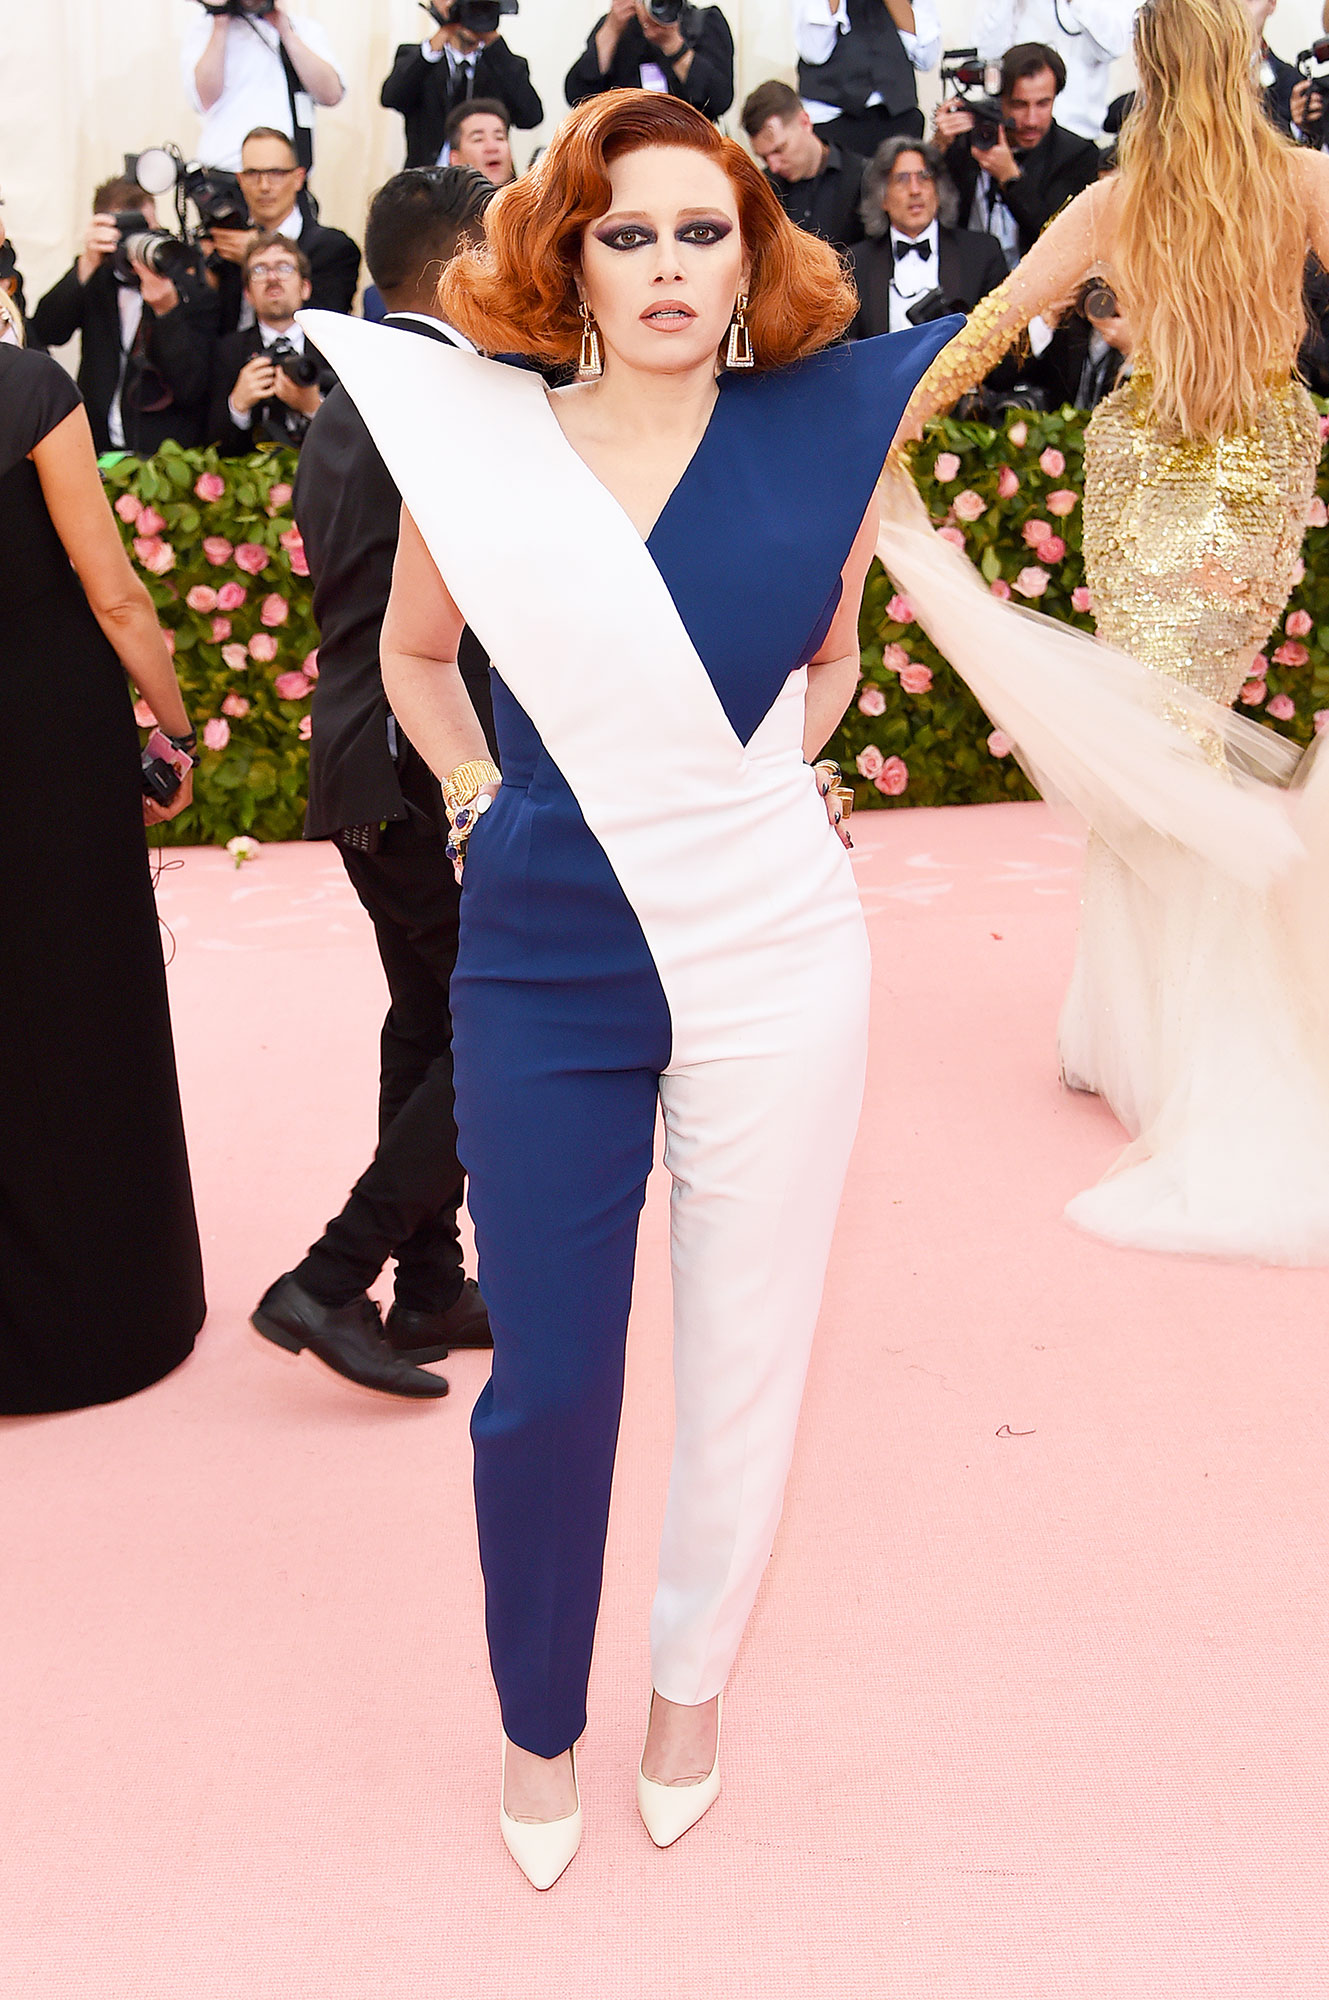 Natasha Lyonne met gala 2019 - Wearing a blue and white sculptural jumpsuit with David Webb jewels.